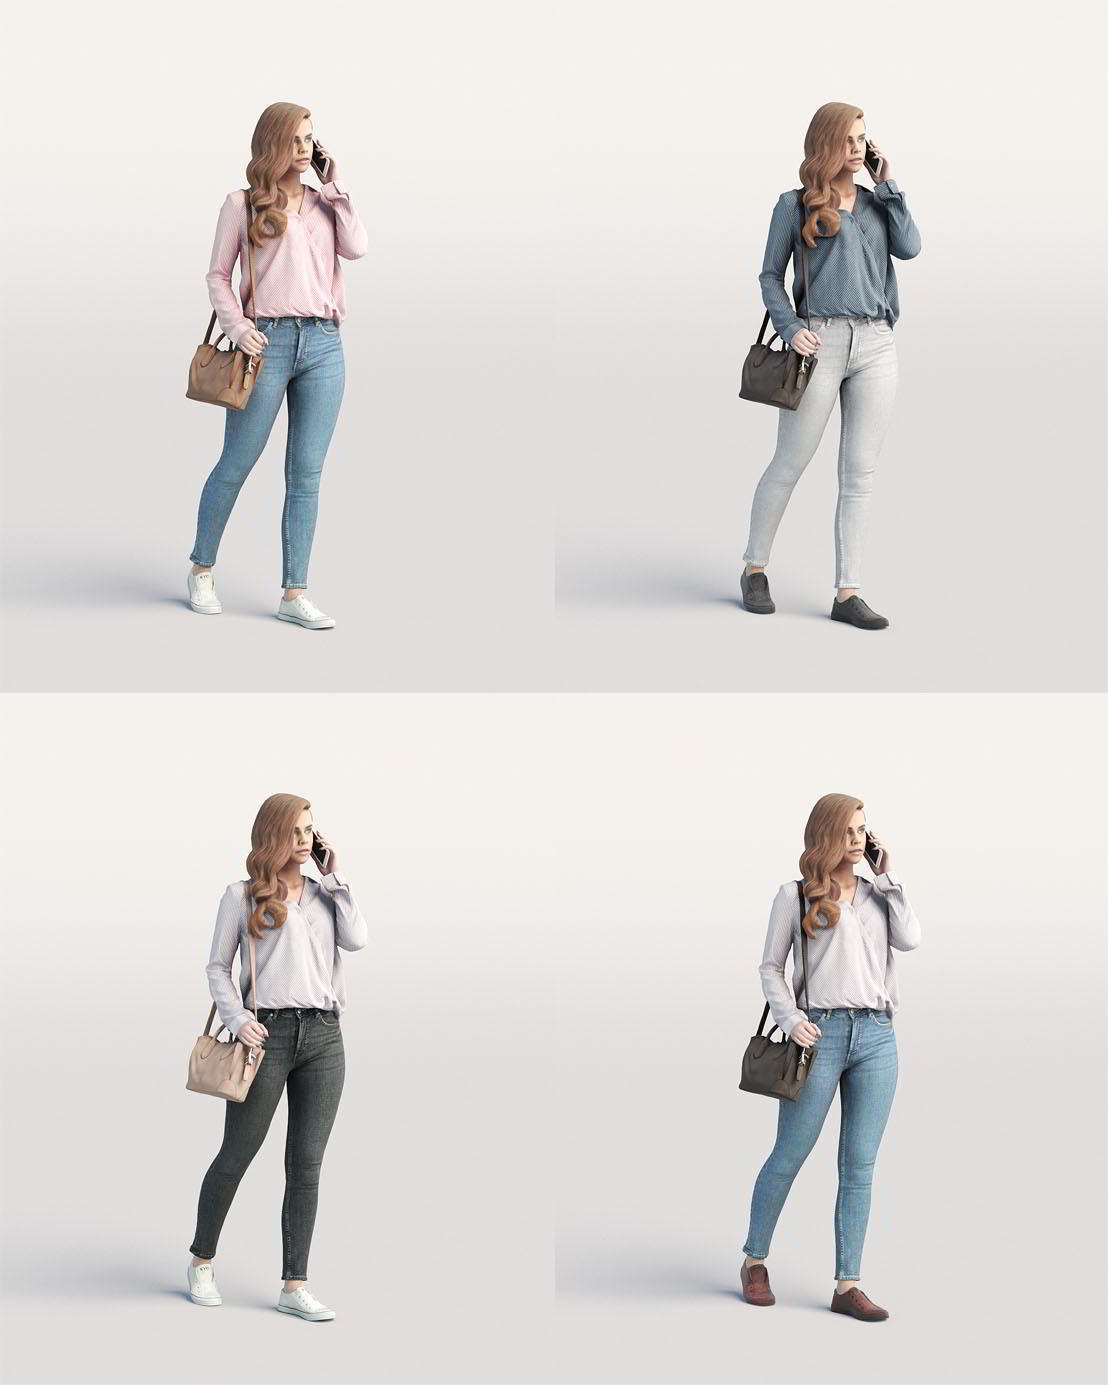 Humano Elegant Casual woman walking with a bag and phone